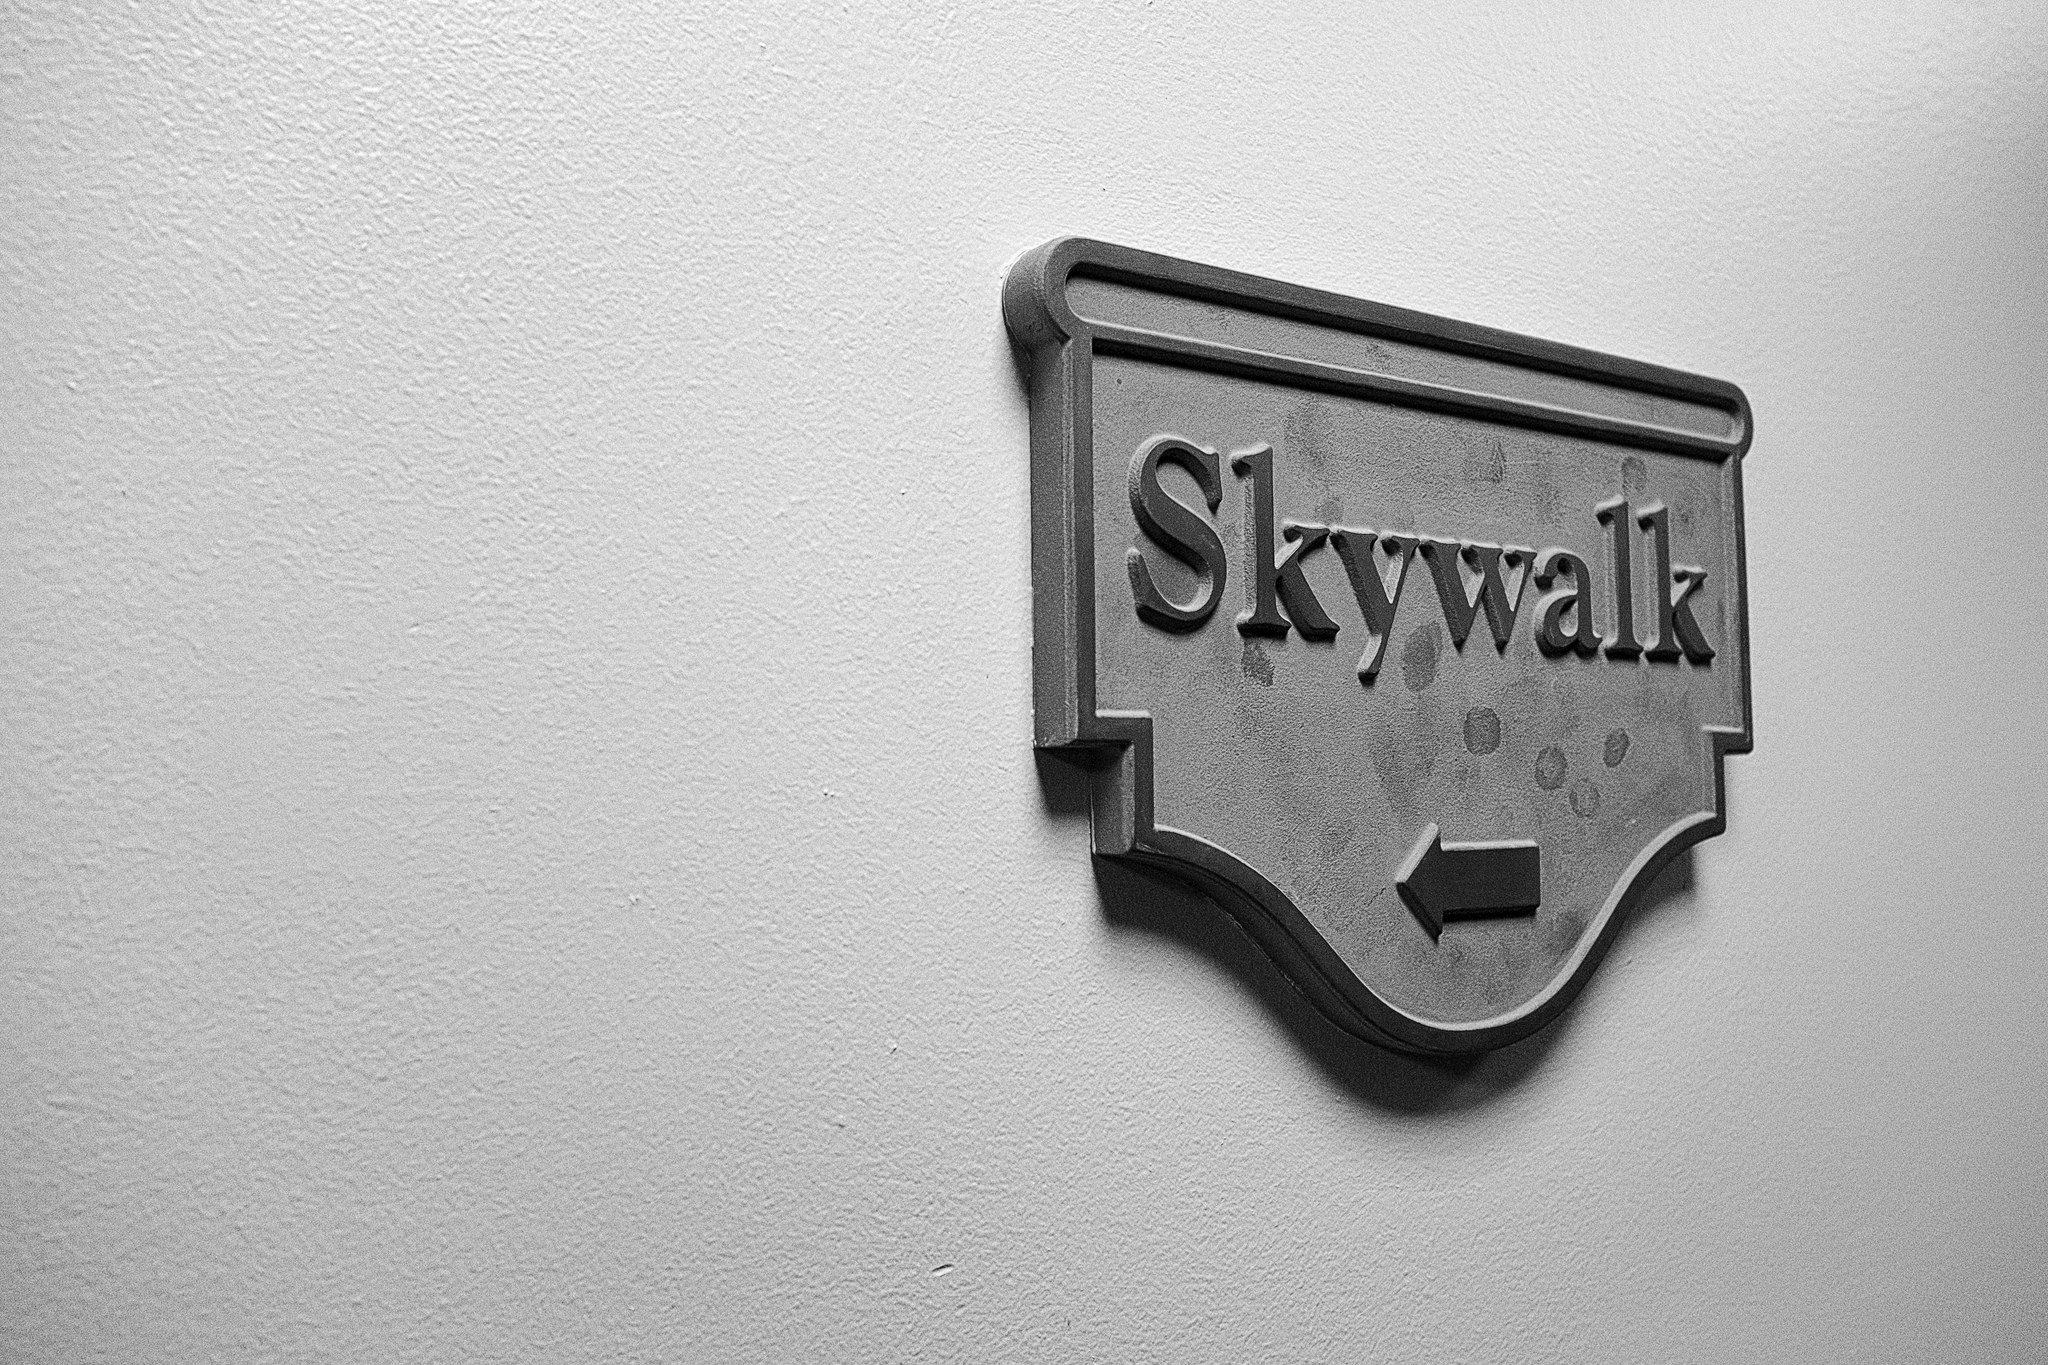 Skywalk 1/10 - Signage- © 2016 Michael F. Hiatt